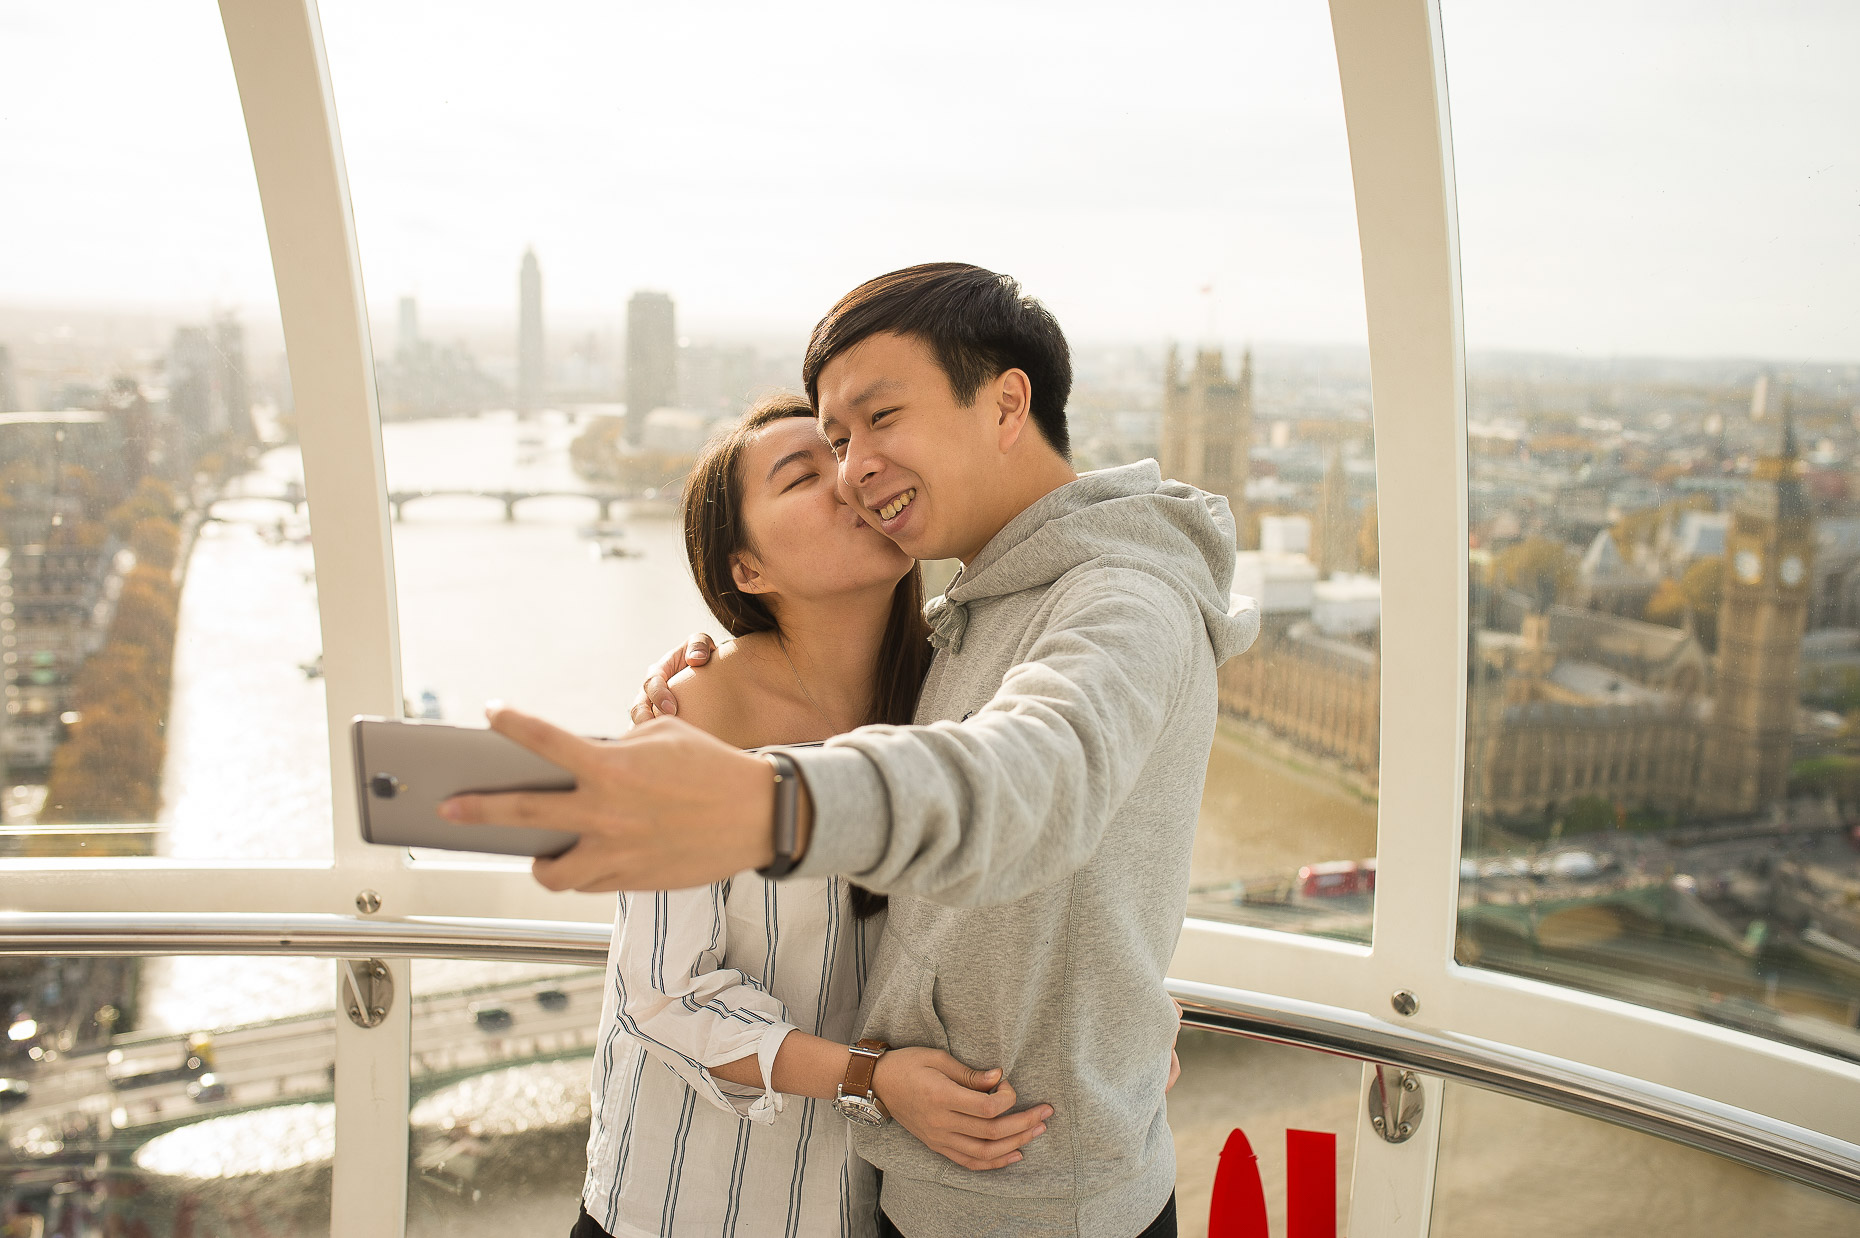 merlin-entertainment-asian-couple-taking-selfie-london-eye-view-city-18